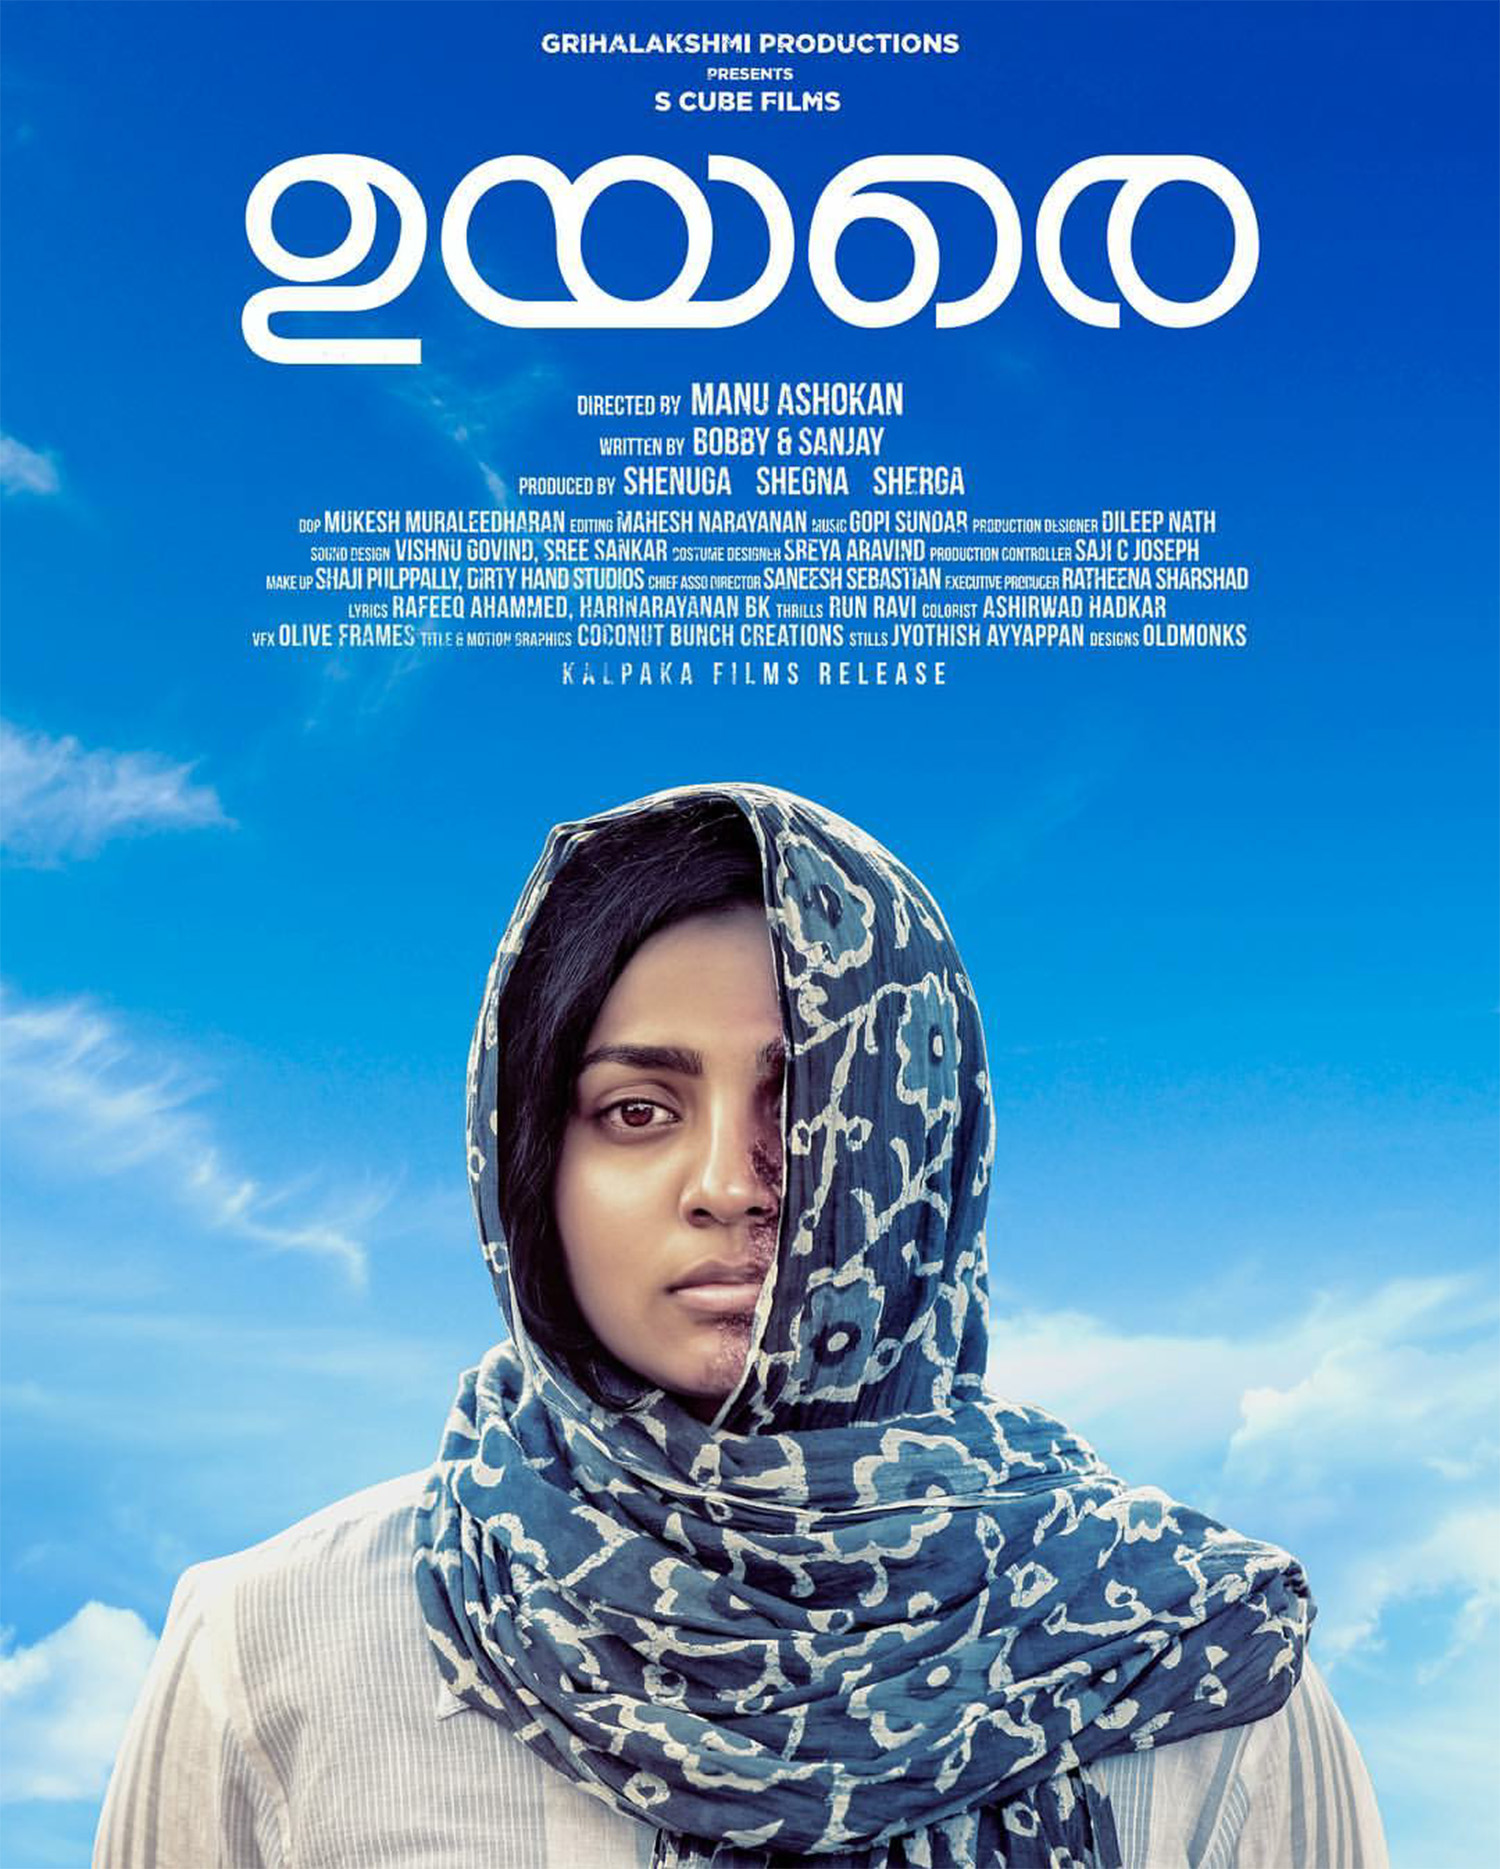 uyare review,uyare hit or flop,uyare kerala box office report,uyare malayalam movie,uyare review rating,parvathy,parvathy's uyare review,tovino thomas,asif ali,tovino thomas asif ali parvathy uyare review,bobby sanjay's uyare review,parvathy's new movie,asif ali's new movie,tovino thomas new movie,uyare poster,uyare movie stills,parvathy tovino thomas and asif ali in uyare